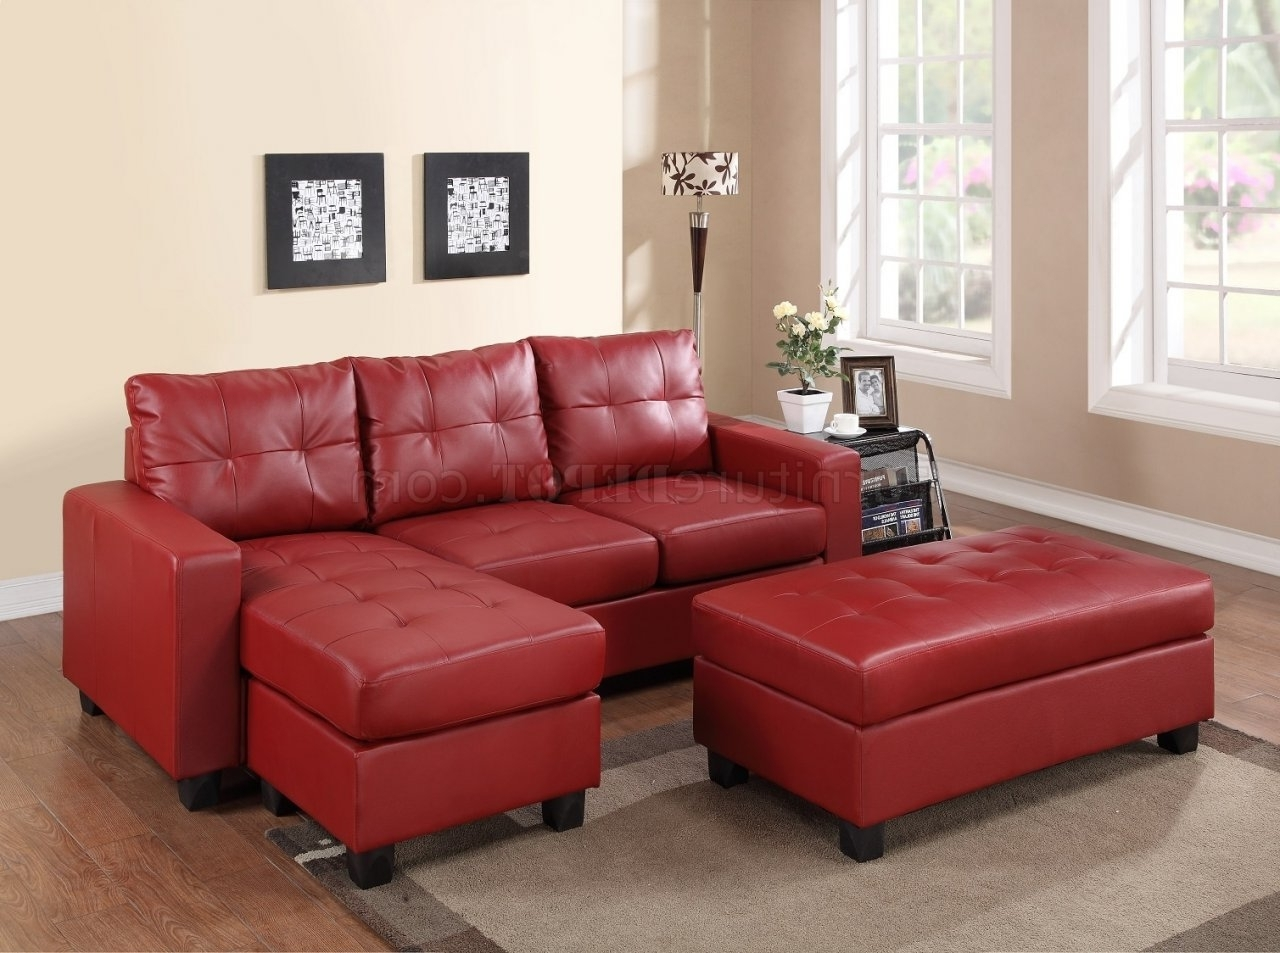 Most Recent Red Sectional Sofas Inside 2511 Sectional Sofa Set In Red Bonded Leather Match Pu (View 9 of 20)